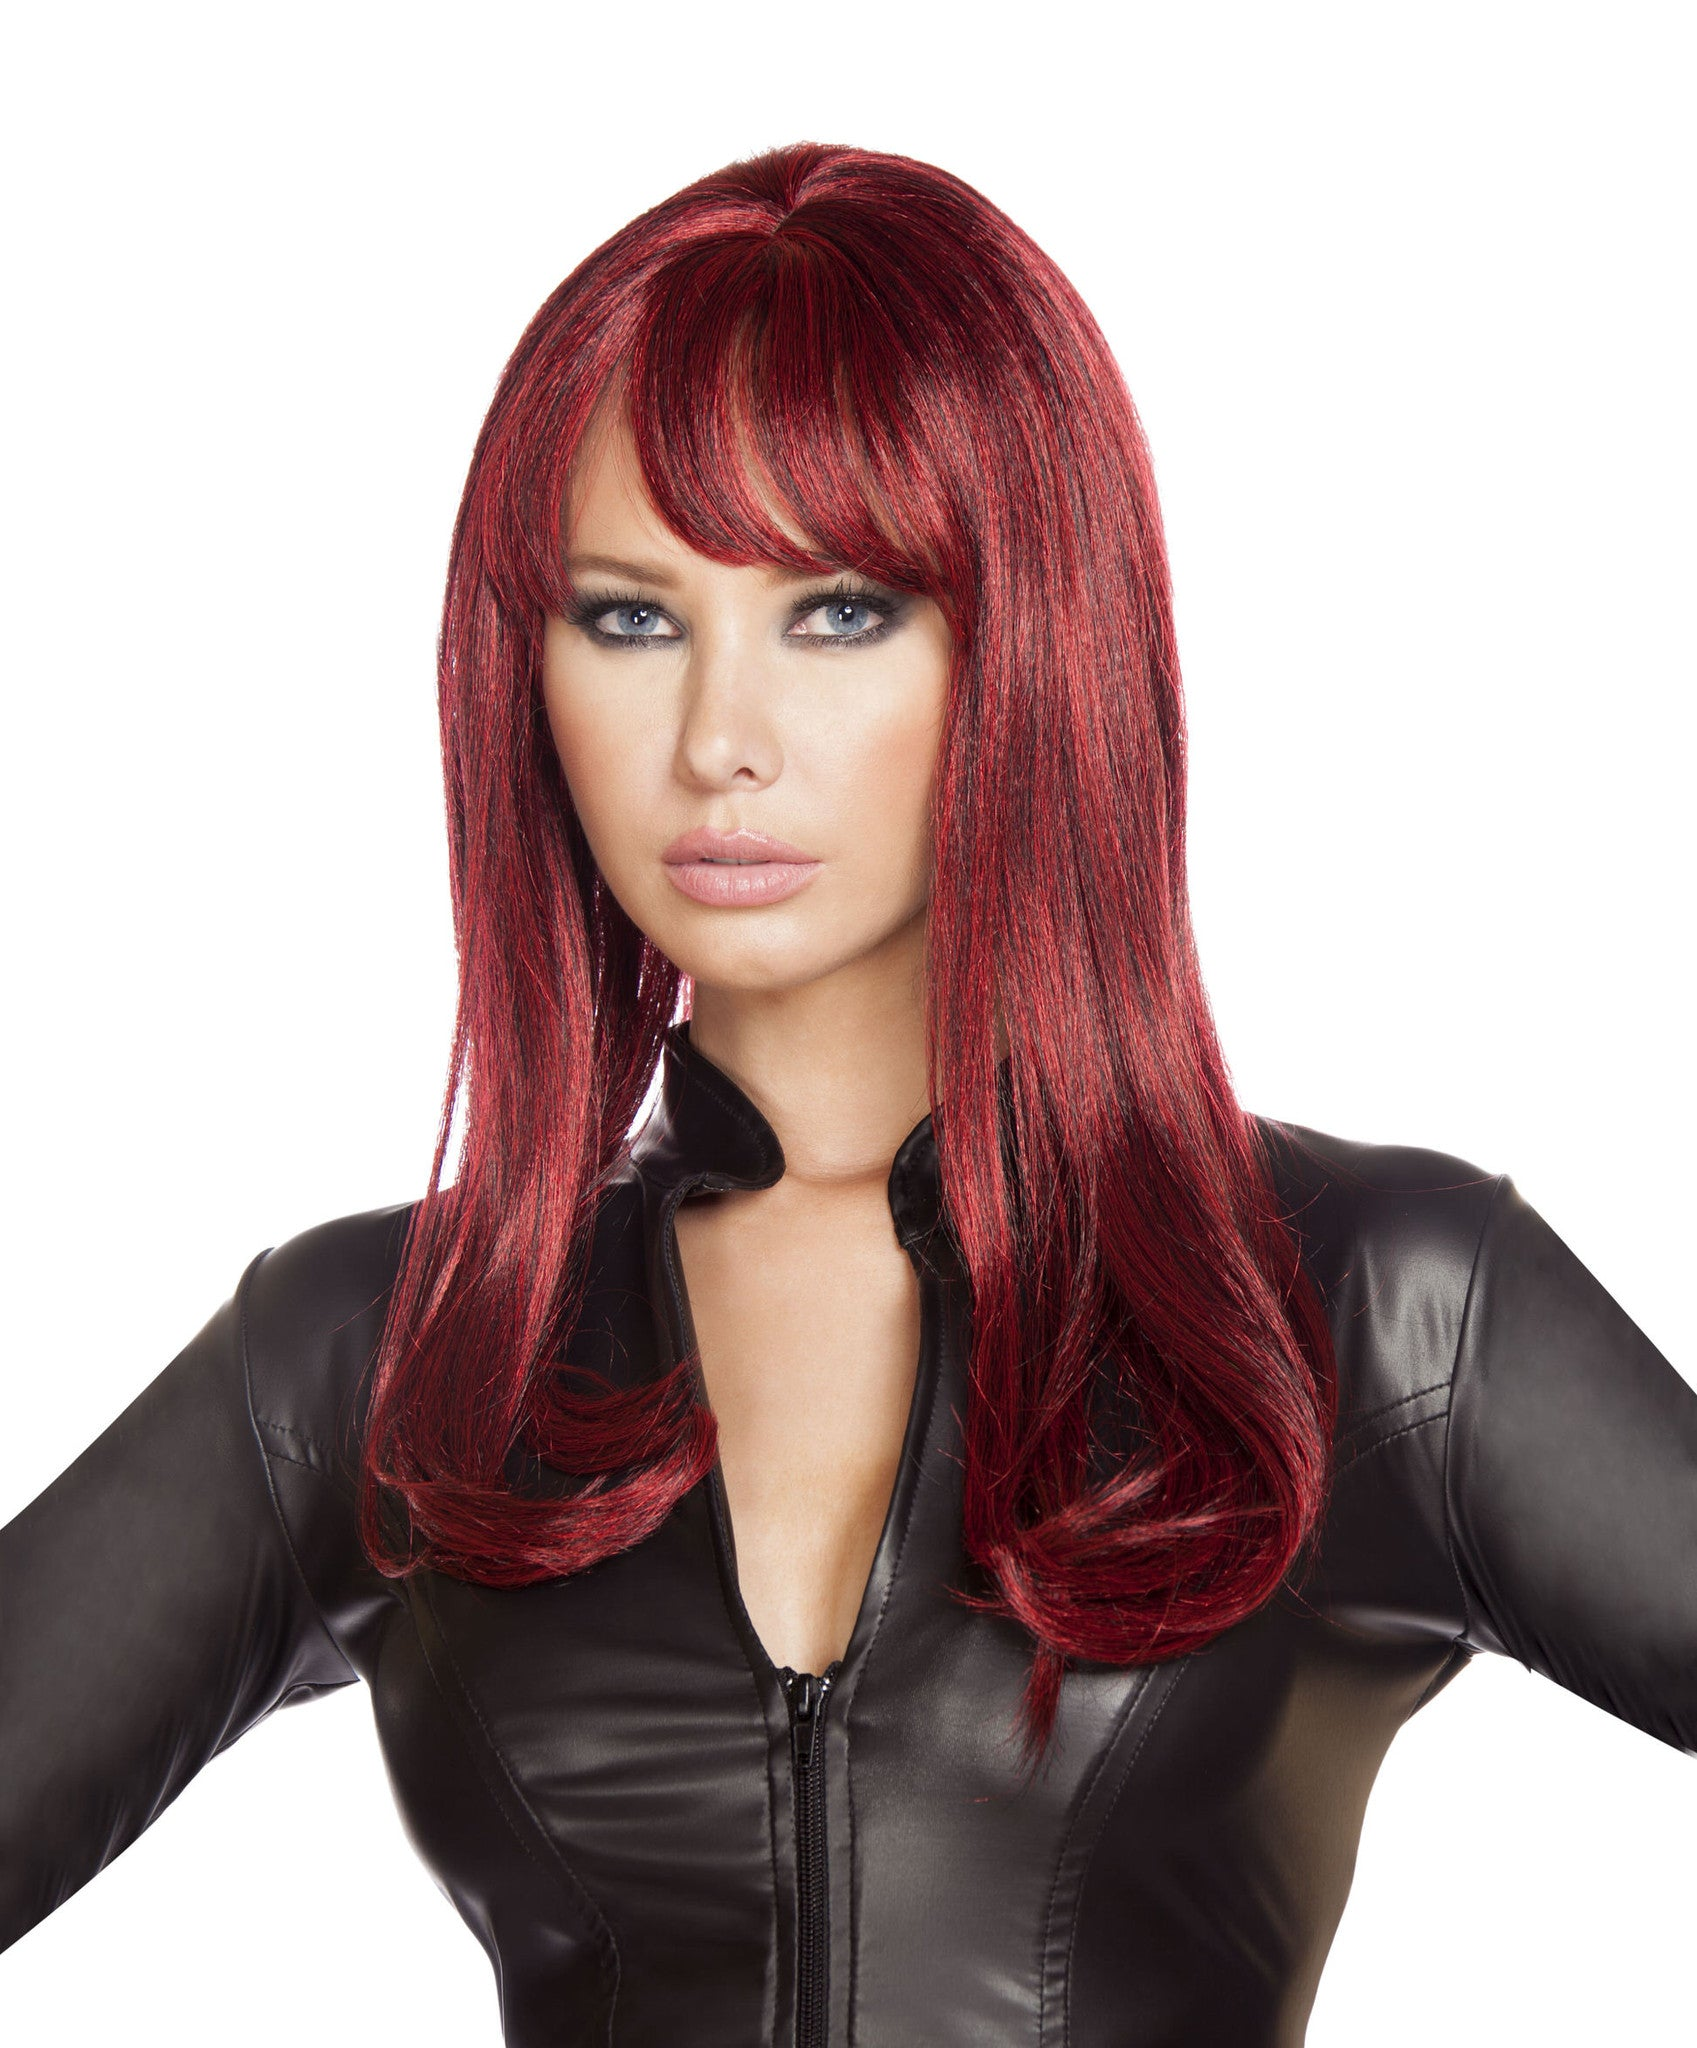 WIG103 Burgundy Wig ${description} | Roma Costume and Roma Confidential wholesale manufacturer of Women Apparel bulk world wide wholesale and world wide drop ship services for Adult Halloween Costumes, Sexy and Elegant Lingerie, Rave Clothing, Club wear, and Christmas Costumes. Accessories,New Products,New Arrivals, Roma Costume, Inc., Roma Costume, Roma Confidential, Wholesale clothing, drop ship, drop ship service, Wholesale Lingerie, Wholesale Adult Halloween Costumes, Rave Clothing, EDM Clothing, Festival Wear, Christmas Costumes, Clubwear, Club wear.